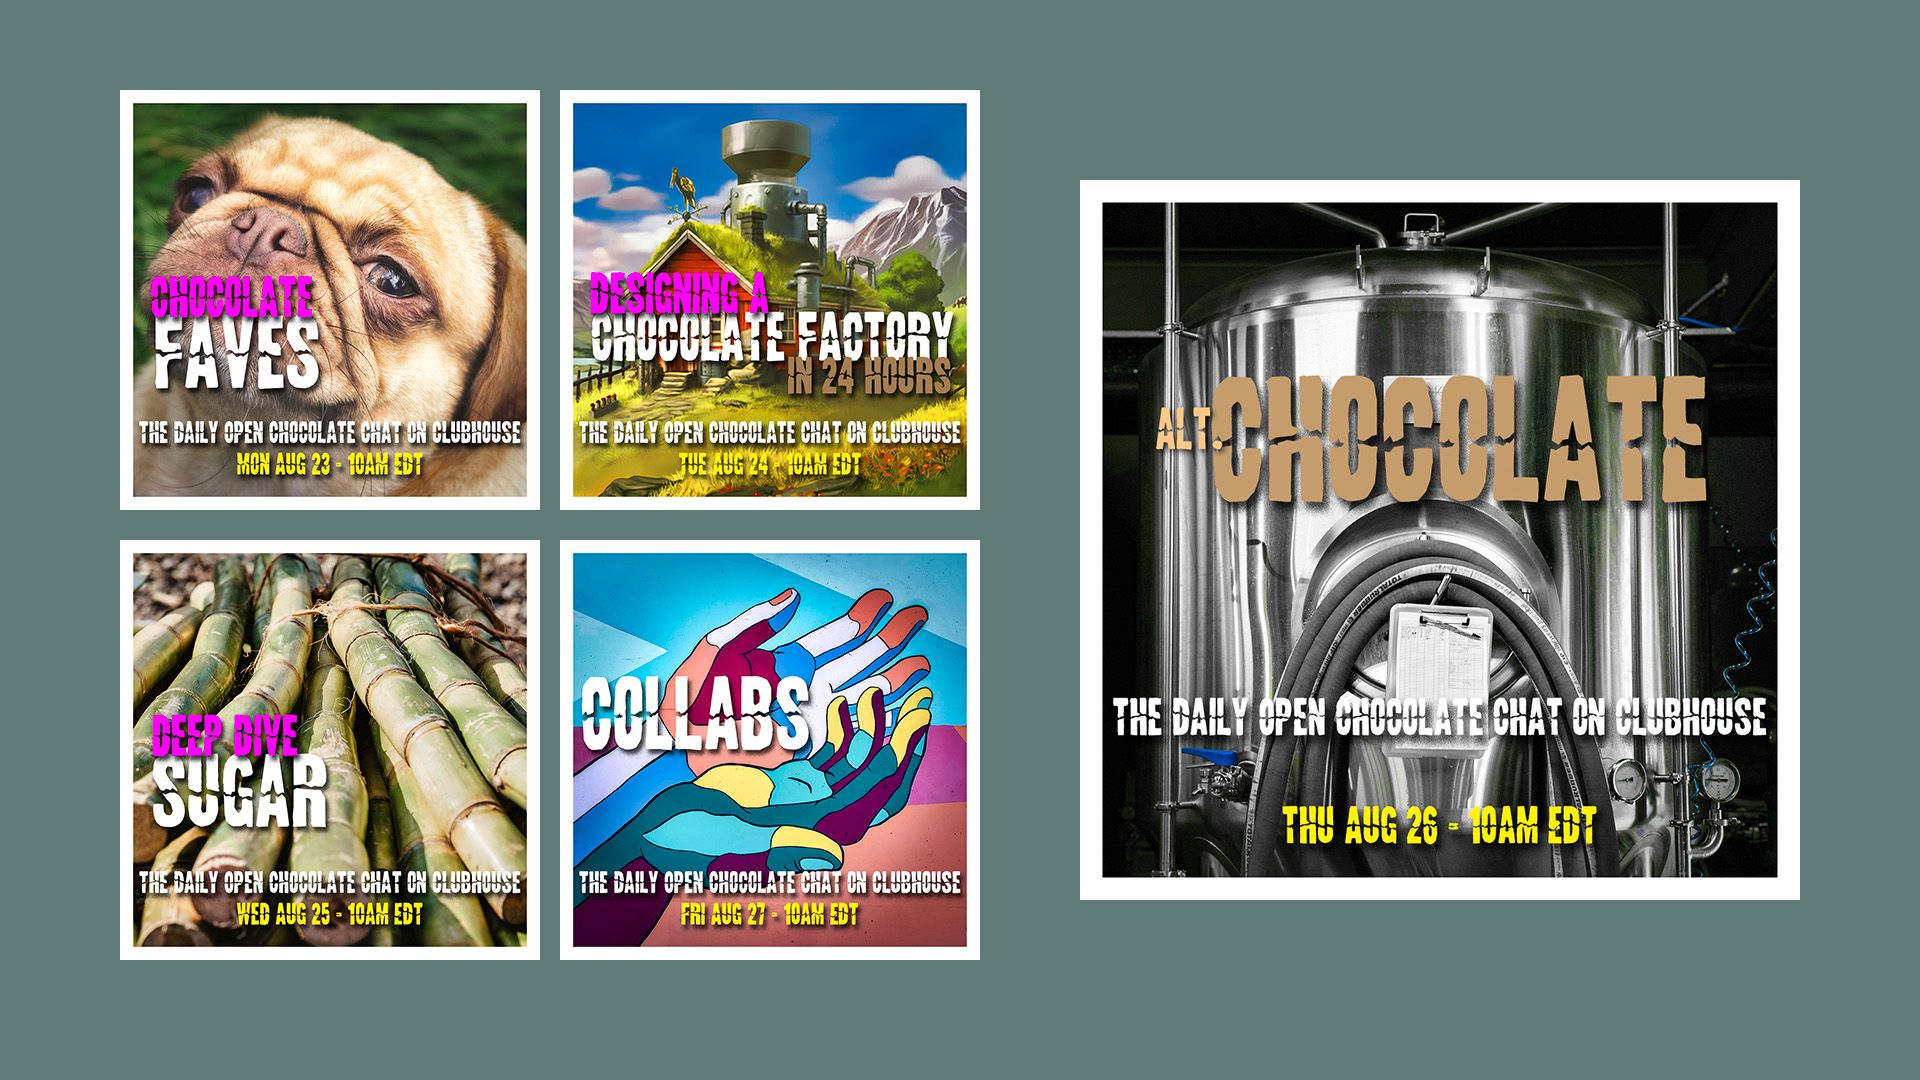 TheChocolateLife on Clubhouse – Week 23